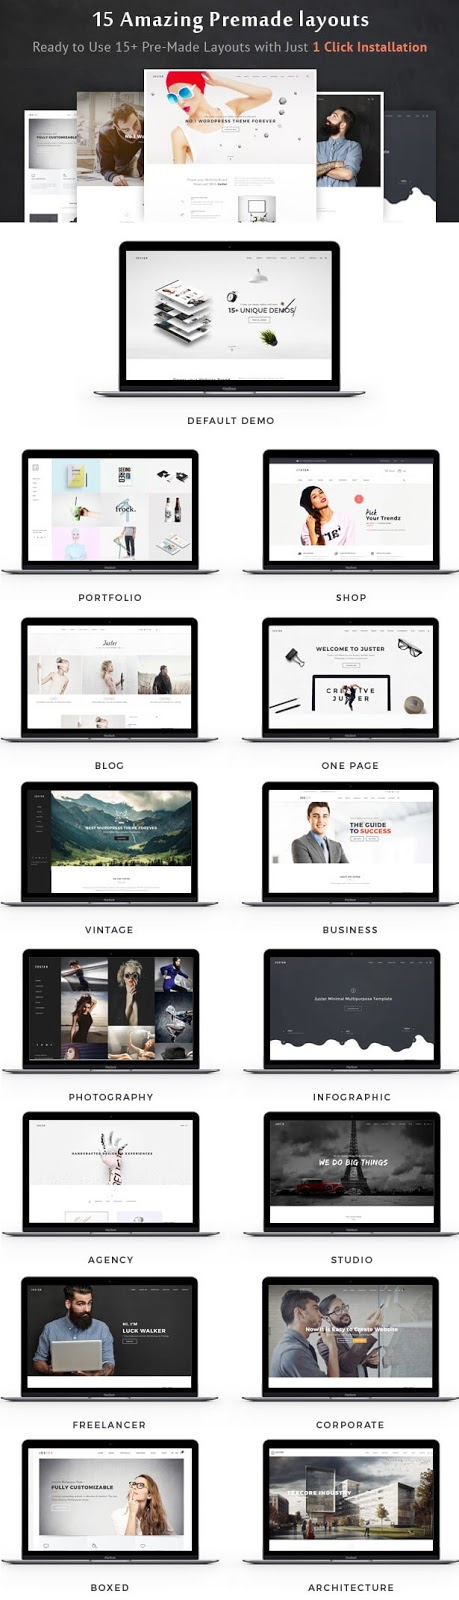 Best Multi-Purpose WordPress Theme